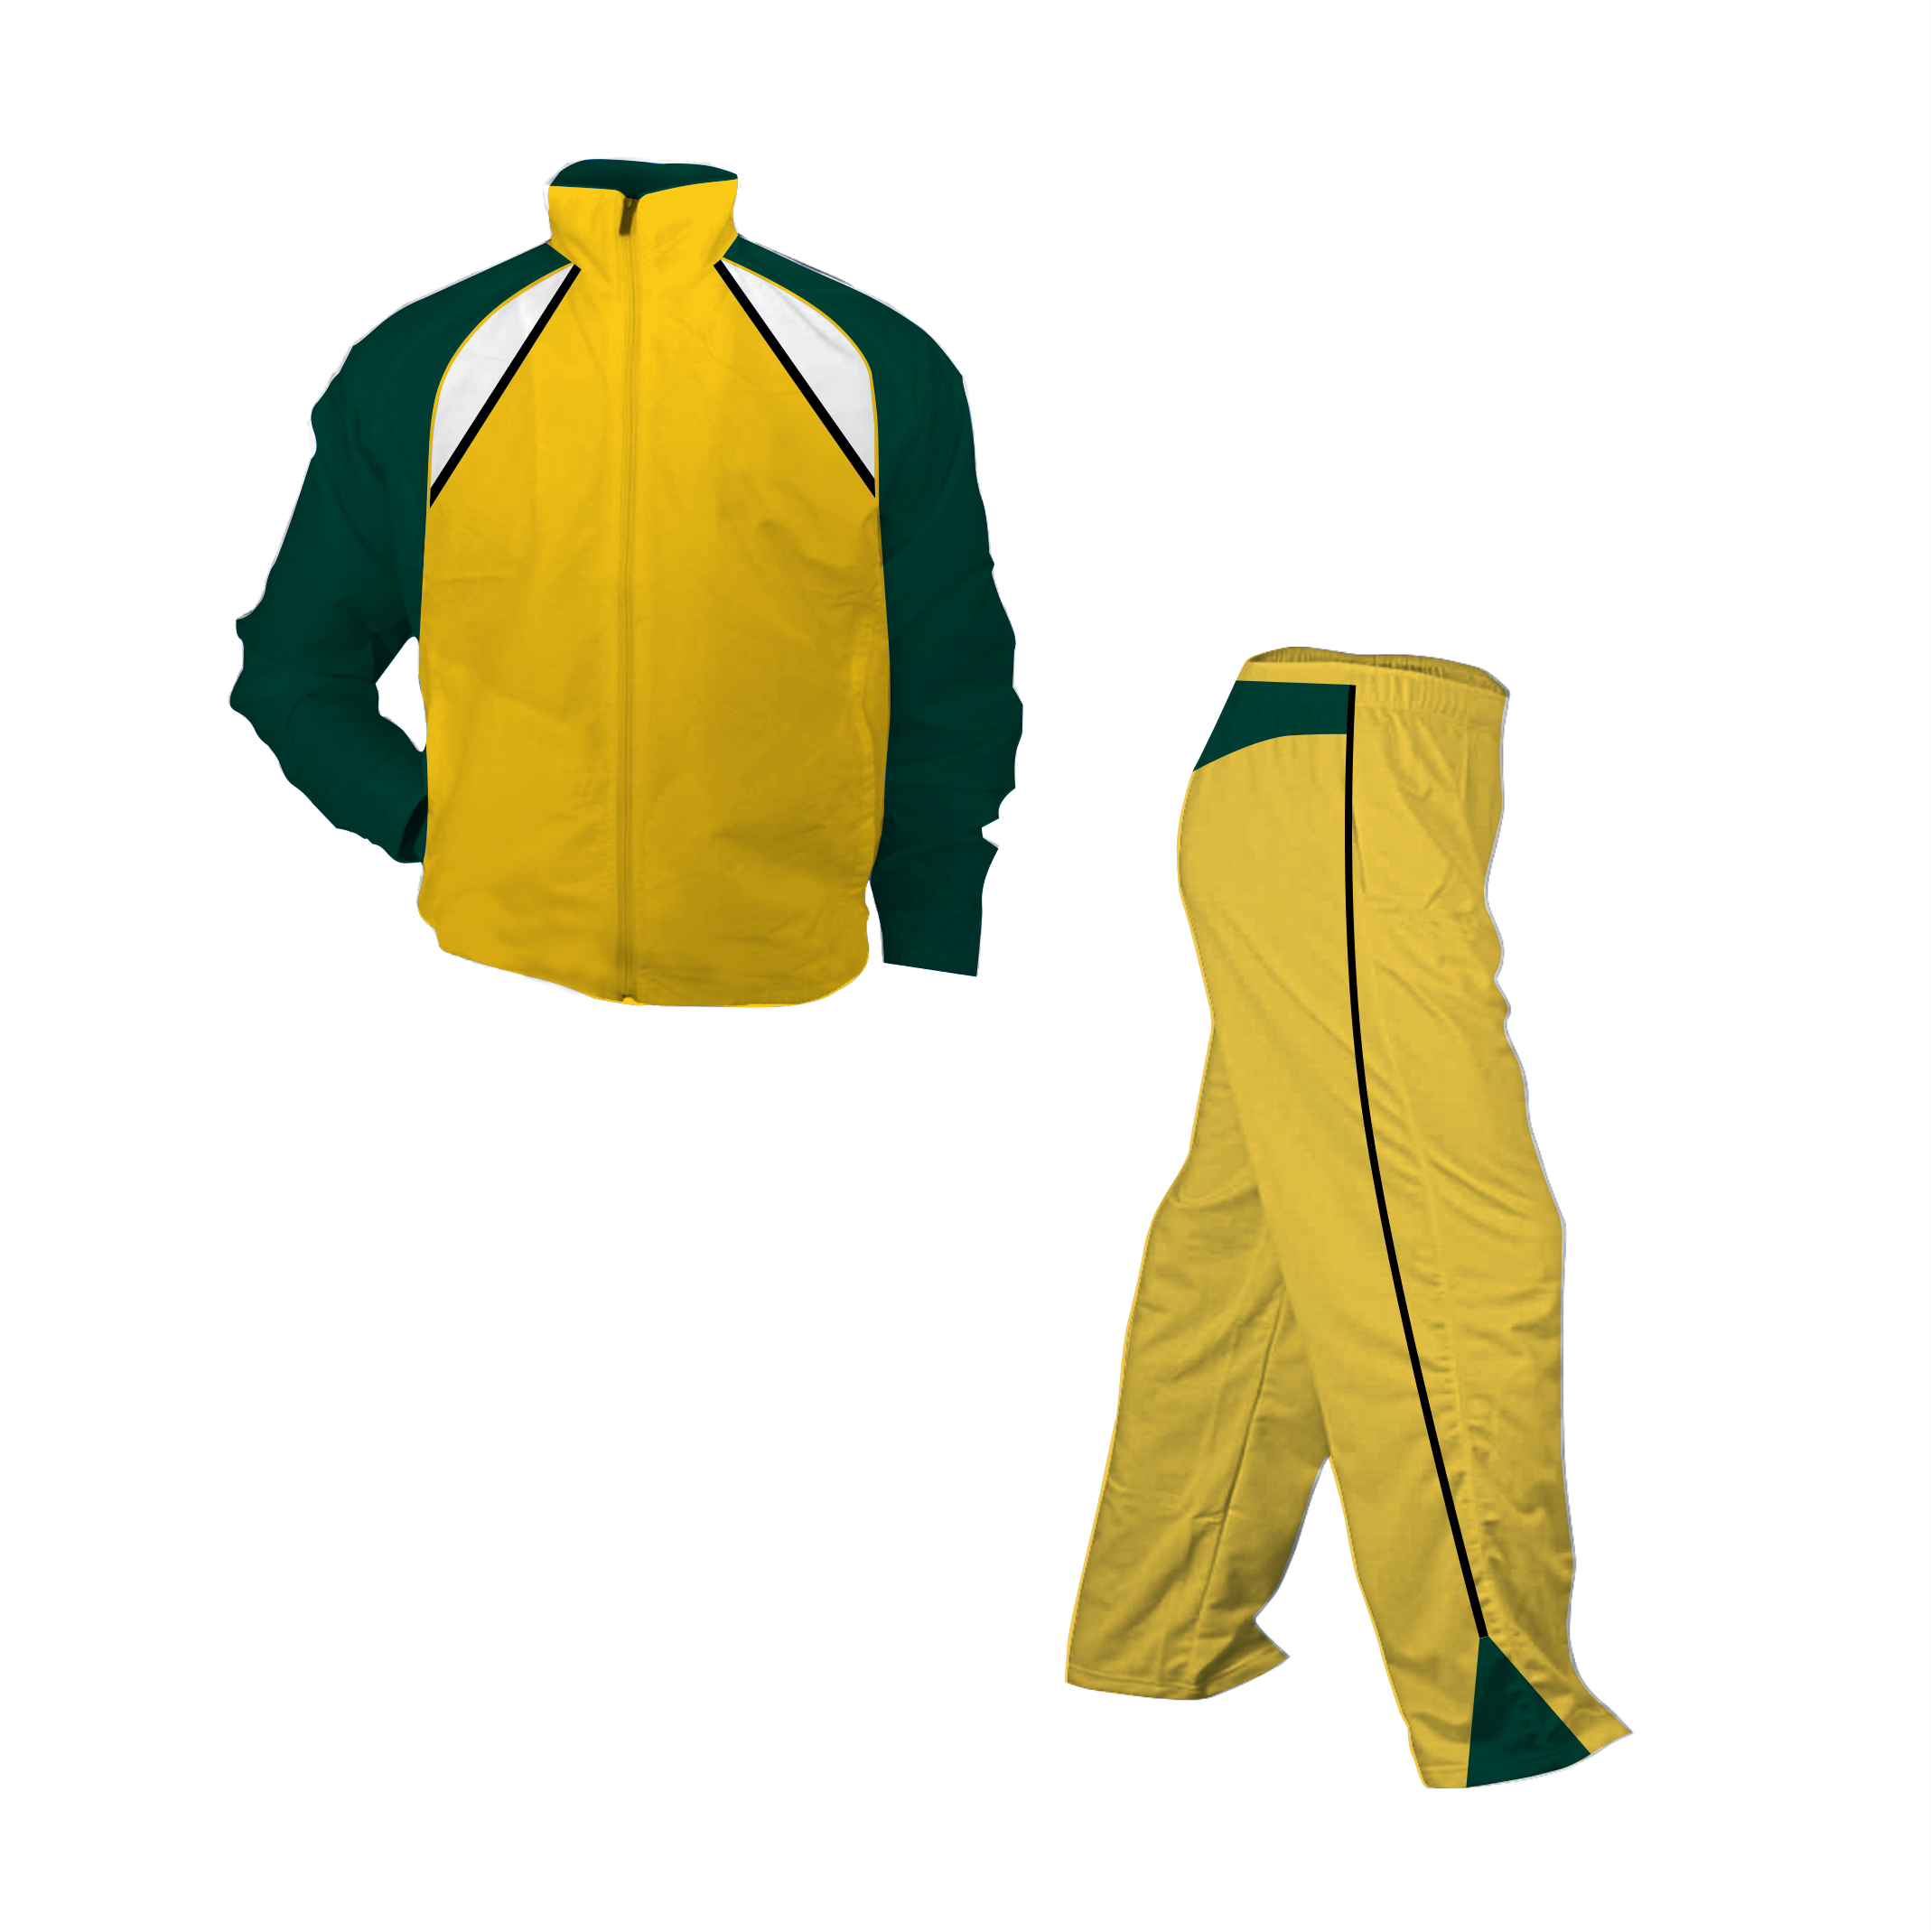 Panelled Zuco tracksuit - Mick